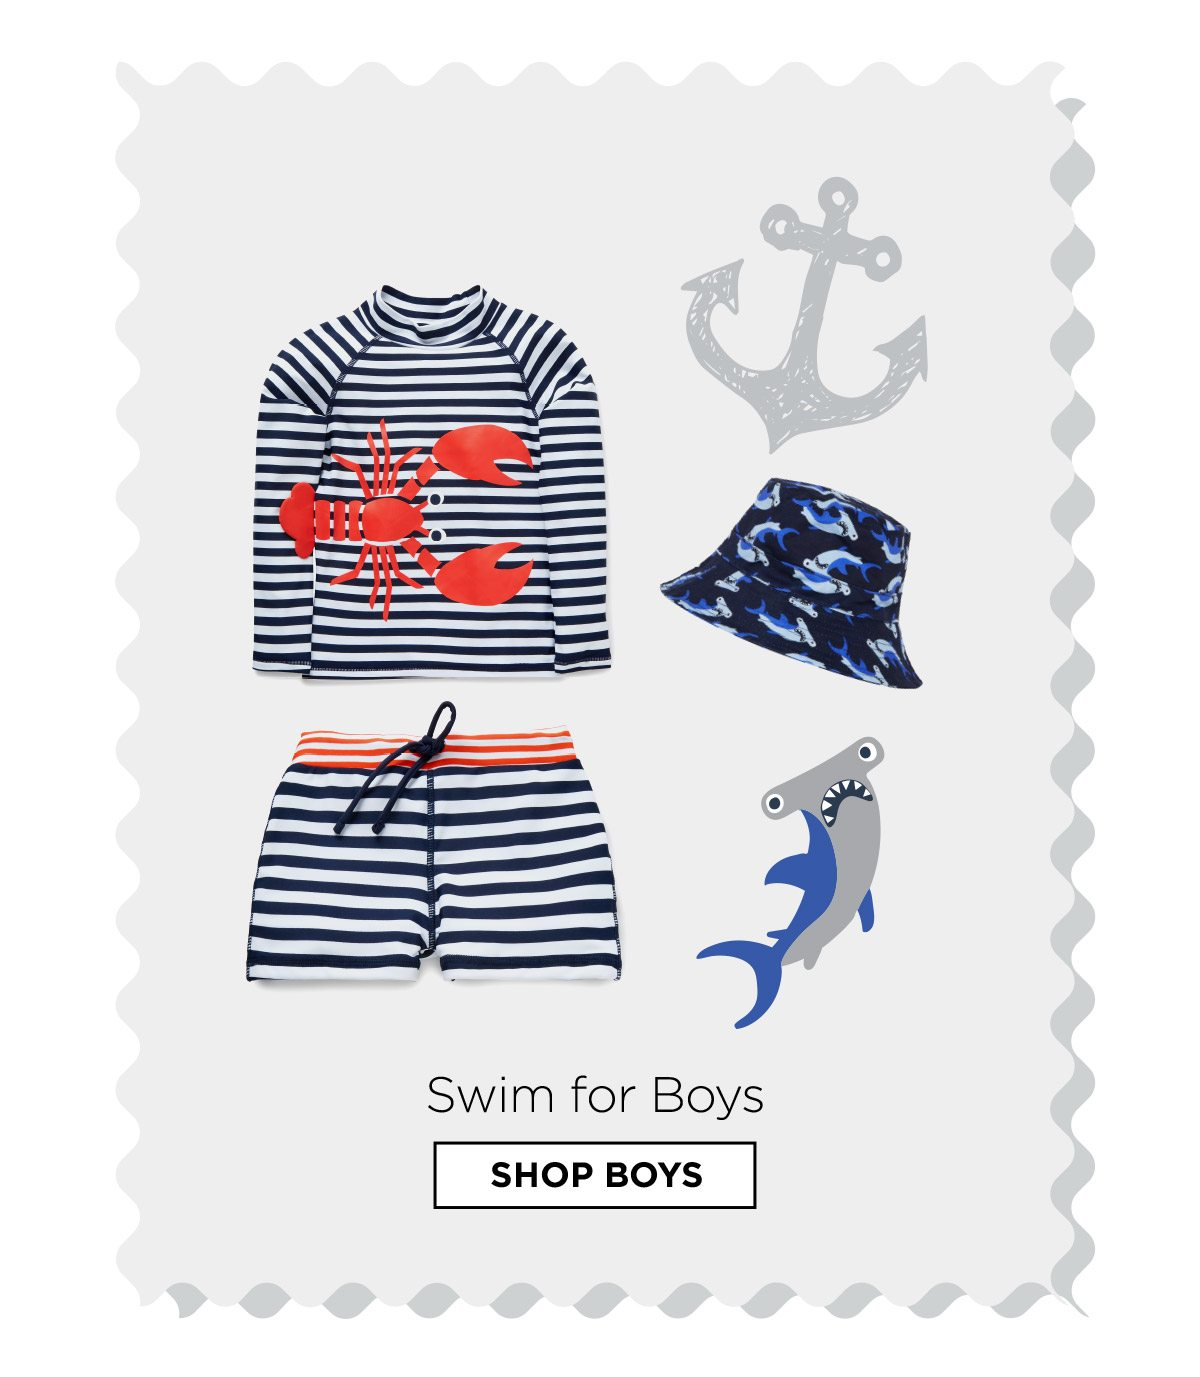 9921f1a8ce8d4 The Swim Shop | Swim for Baby, Child & Teen - Seed Heritage Email ...